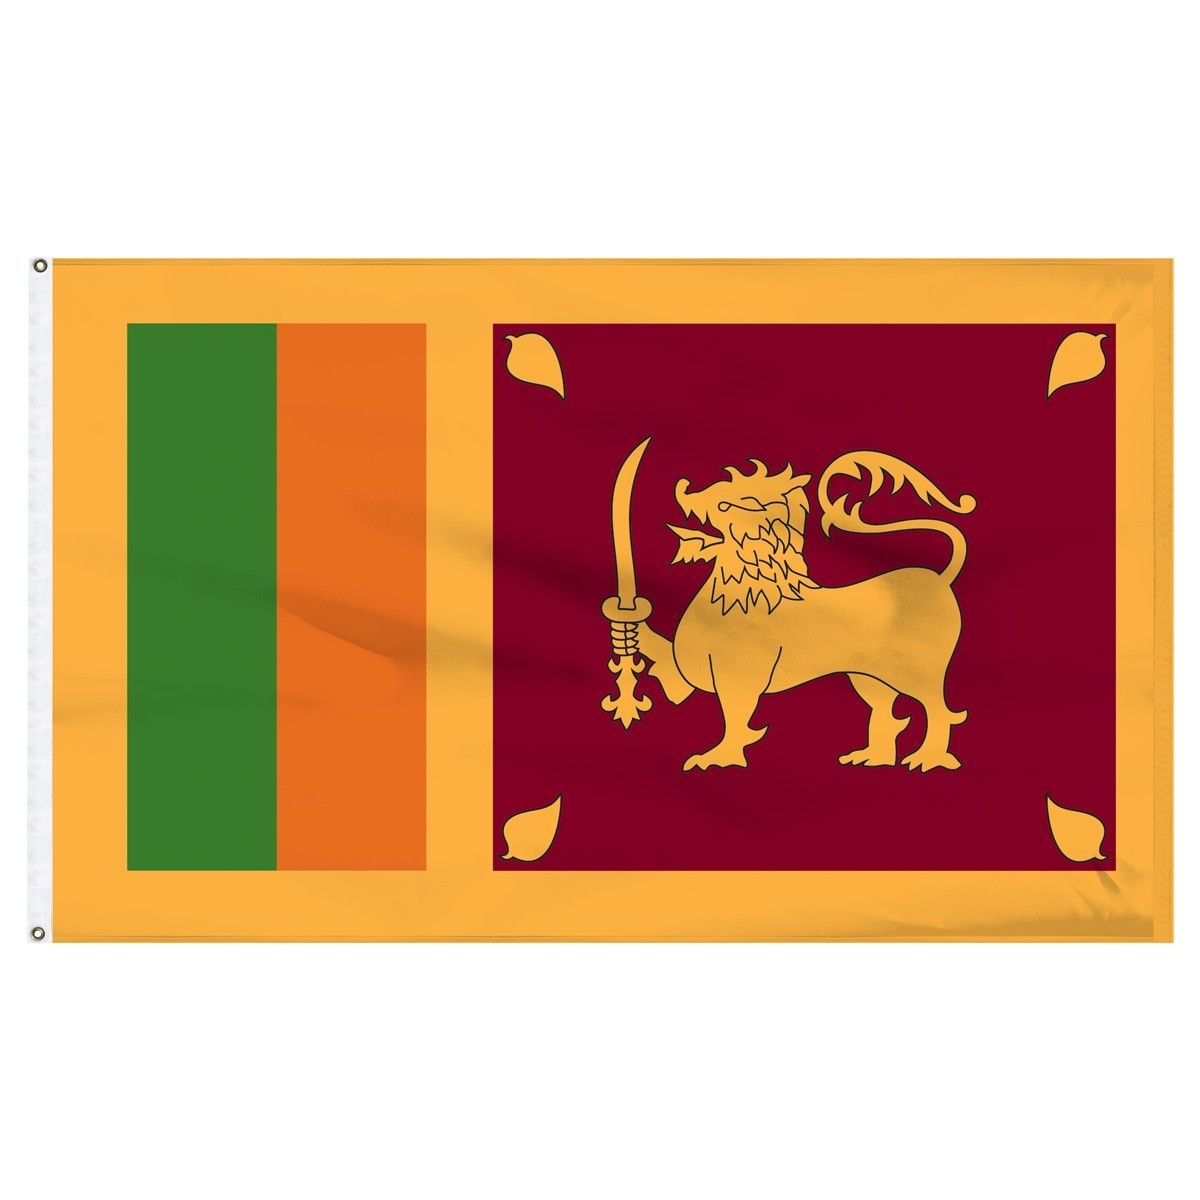 In April 2017, Sri Lankan textile exports up 3%